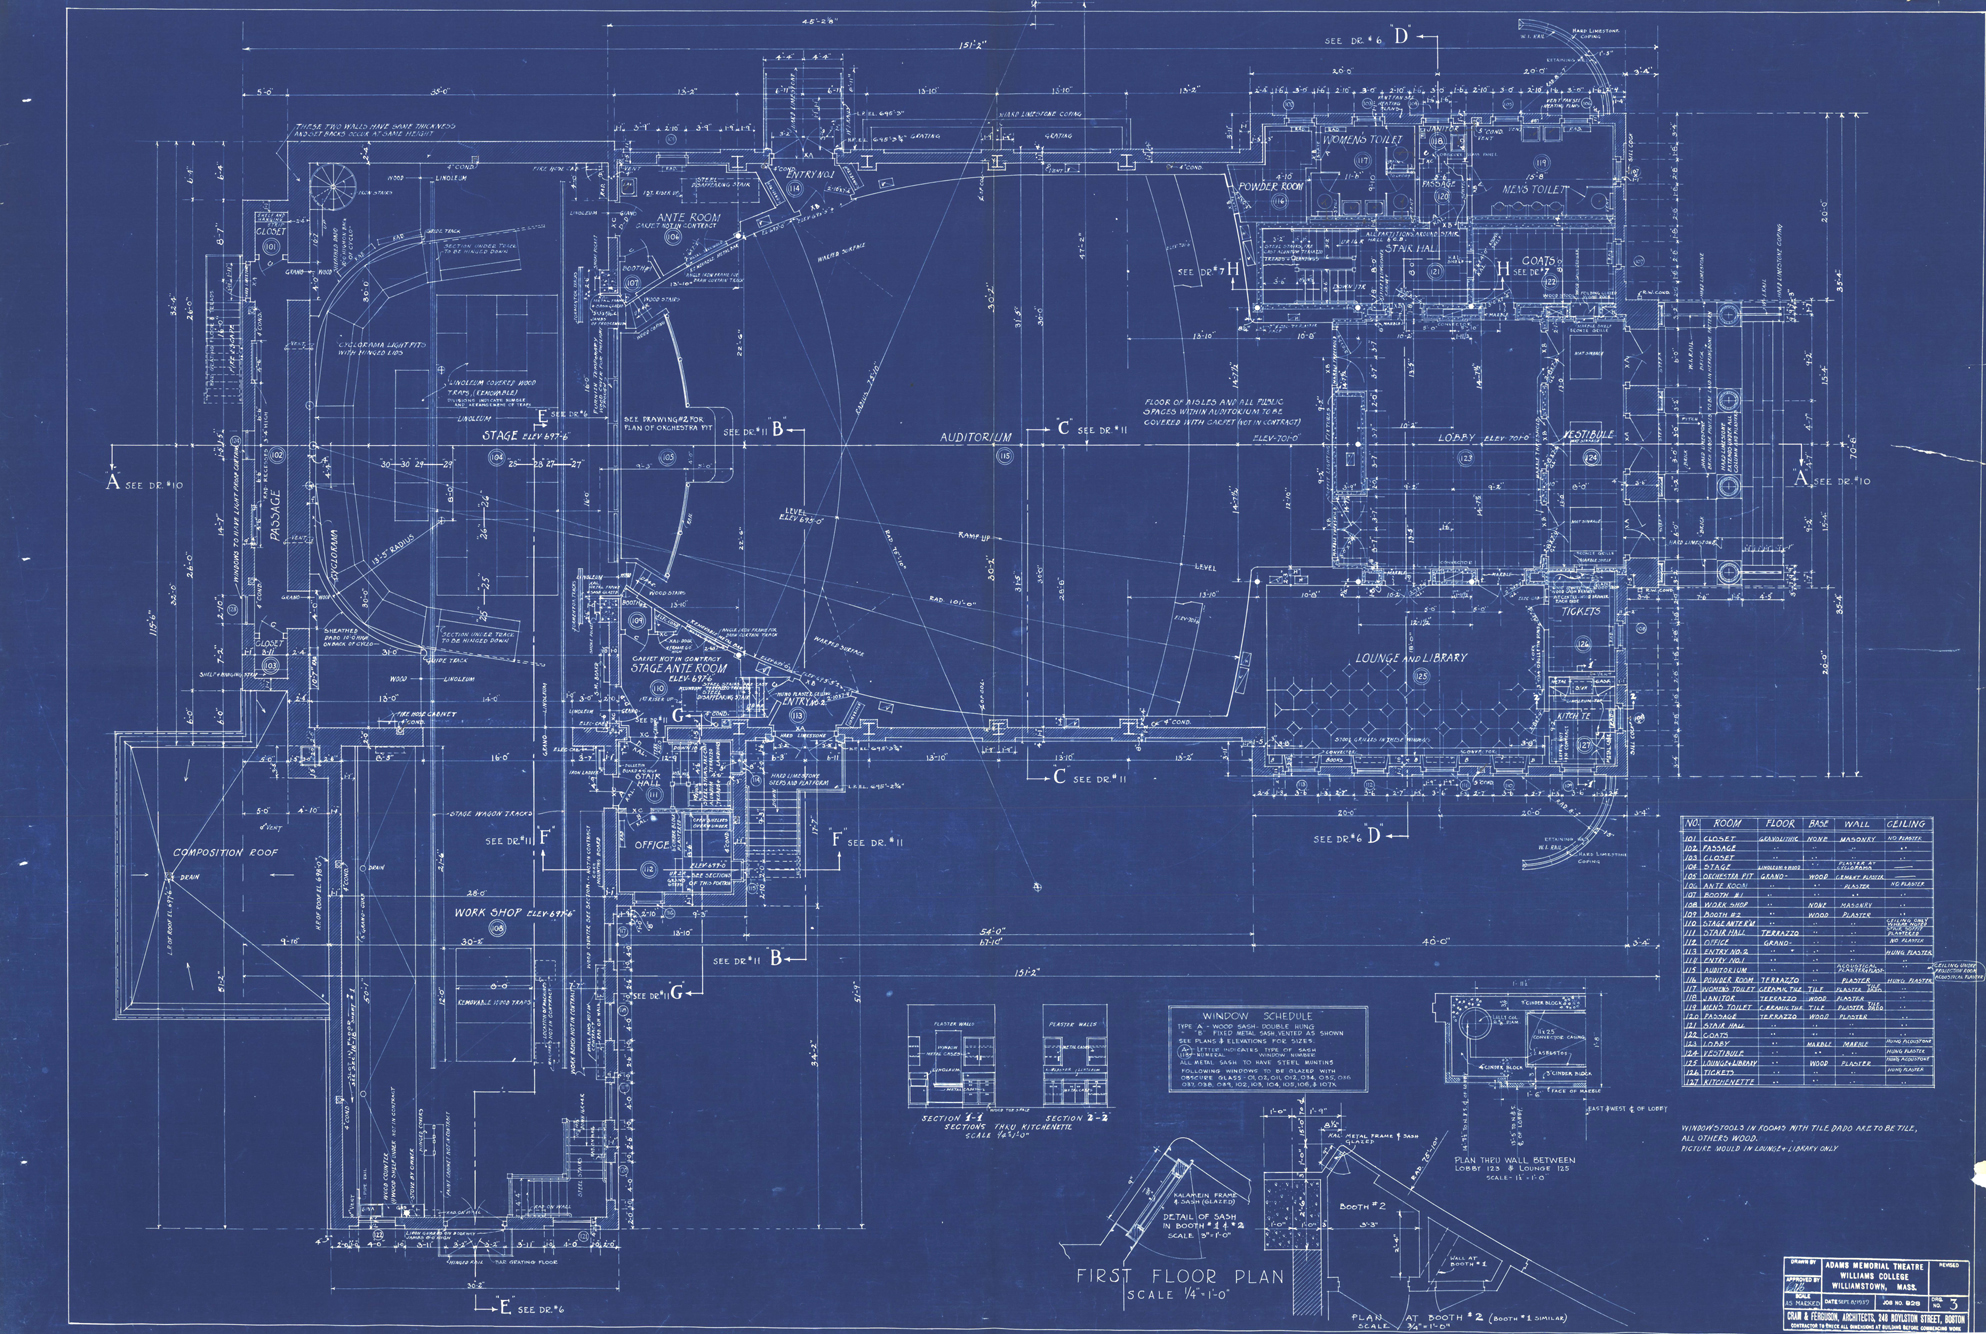 Blueprints for How to find blueprints of a house